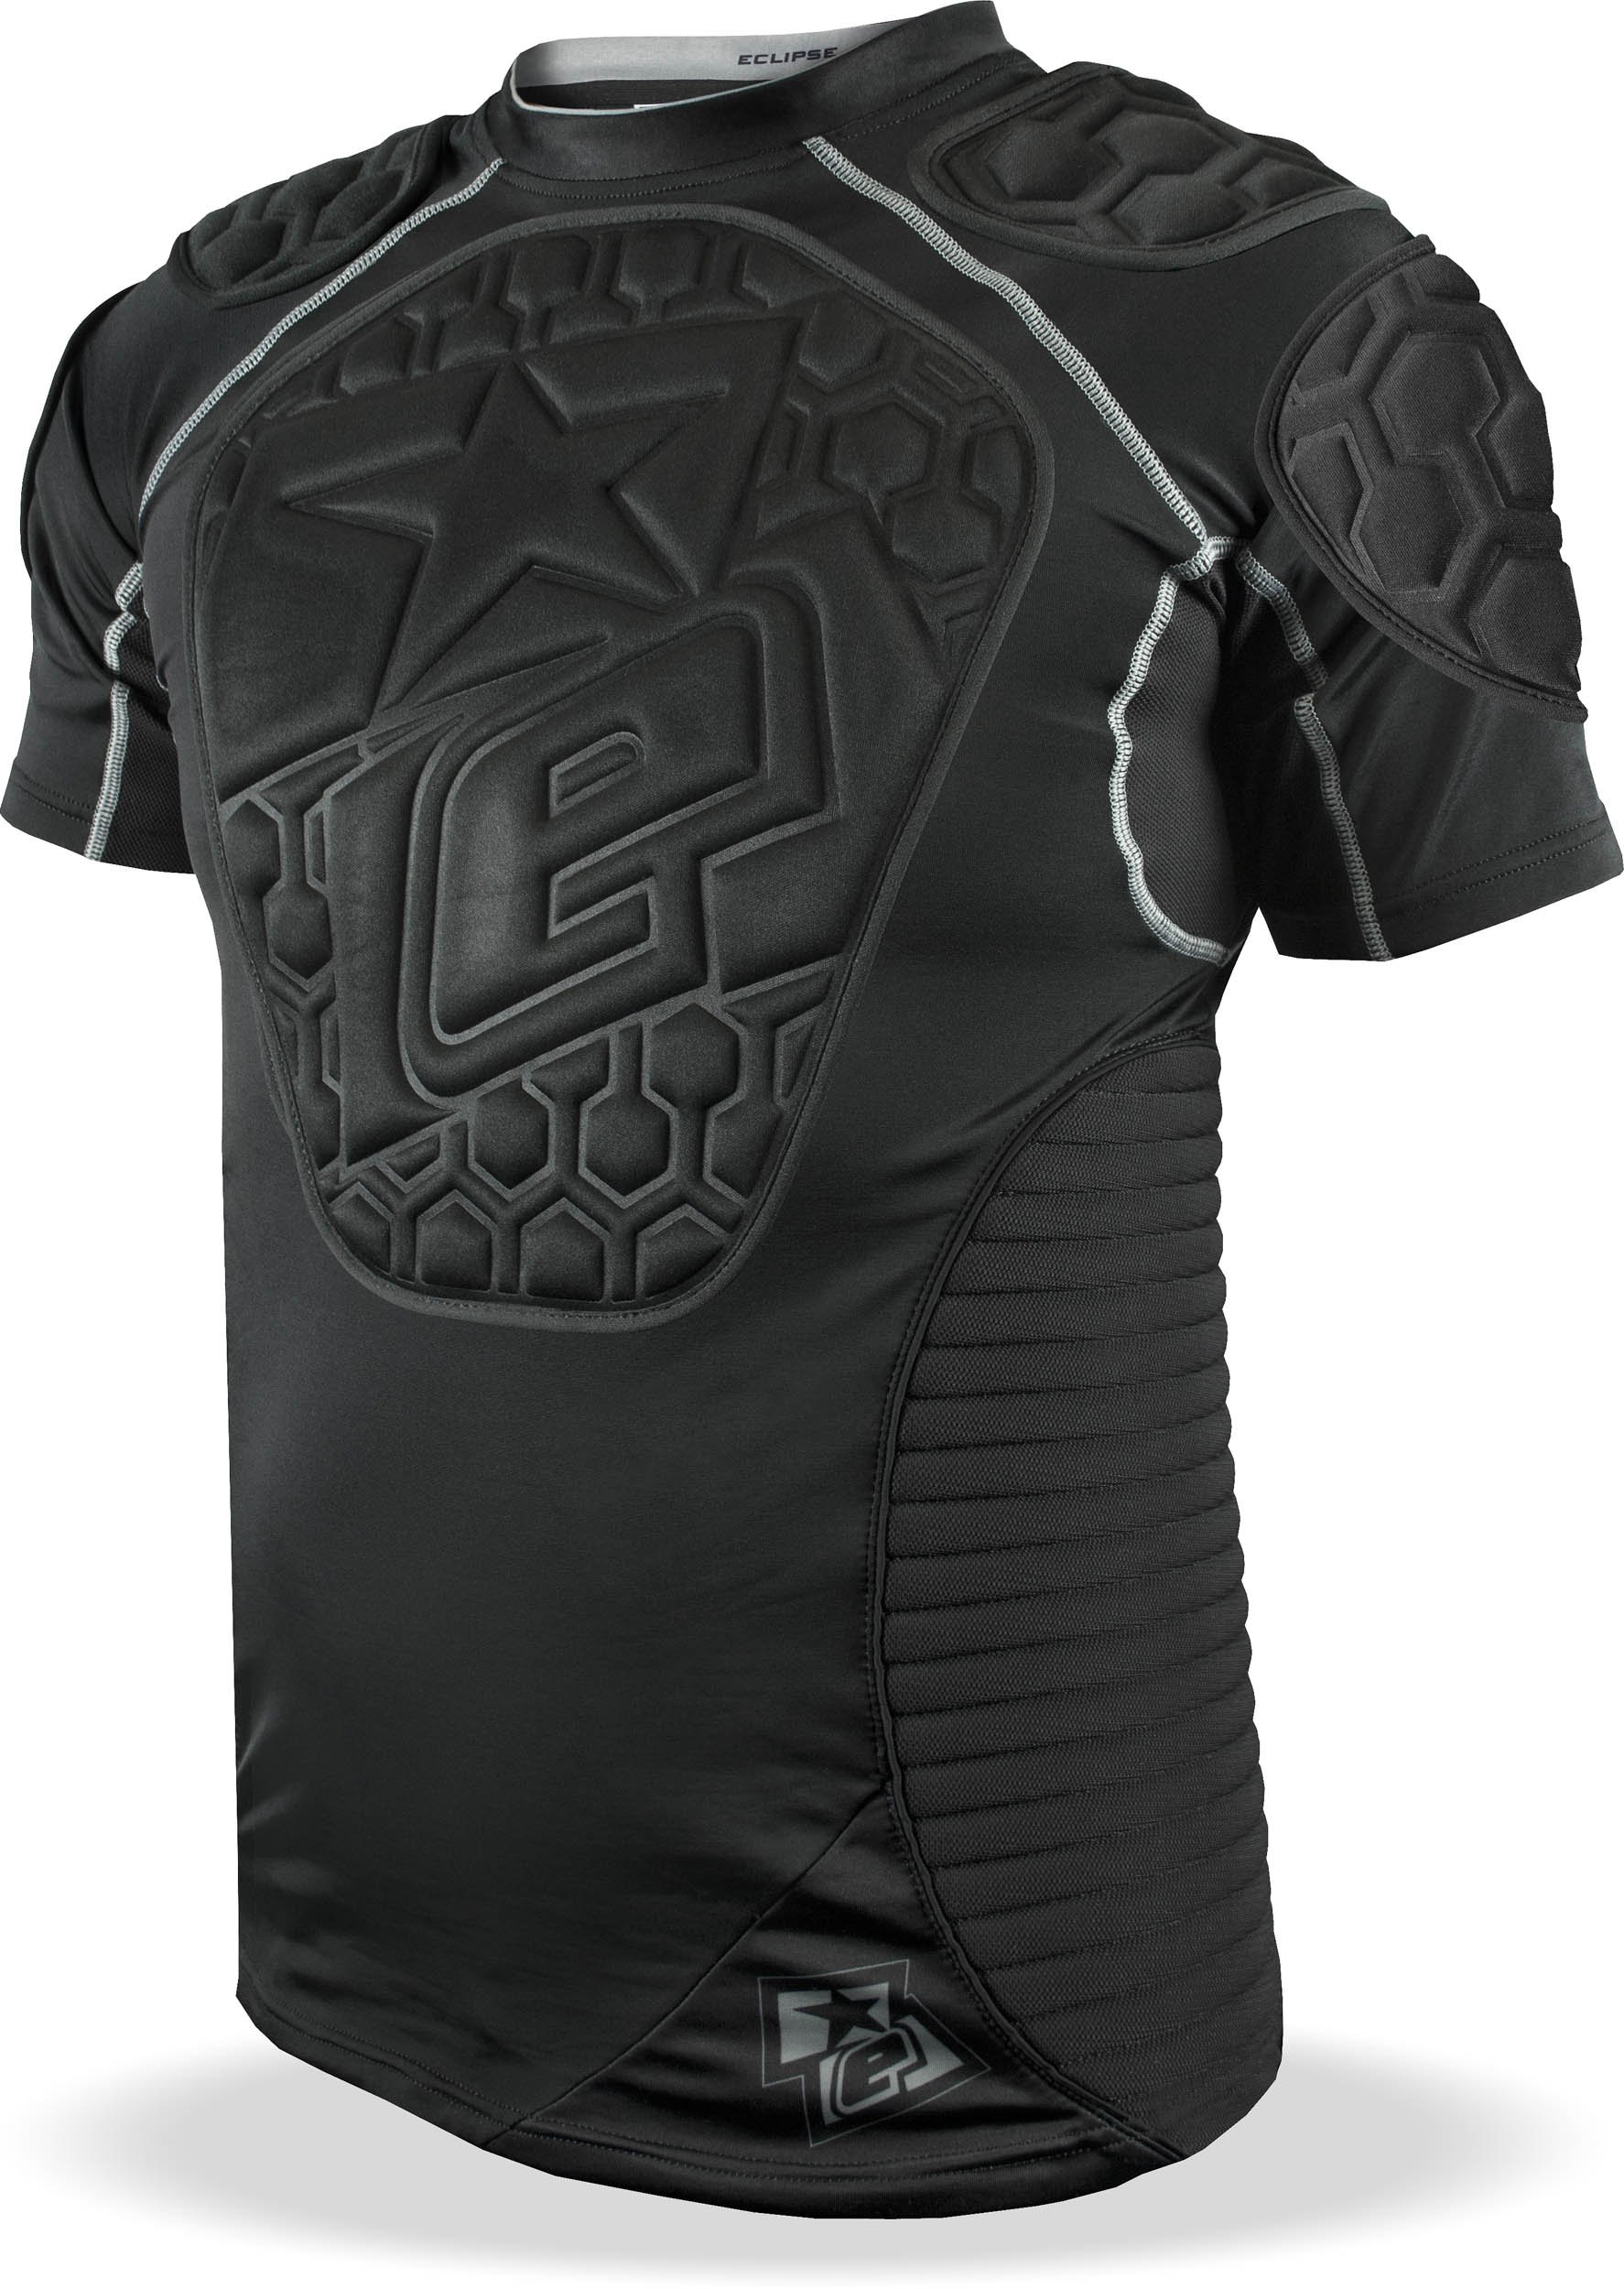 Planet Eclipse Overload Jersey Gen2 - 3X by Planet Eclipse